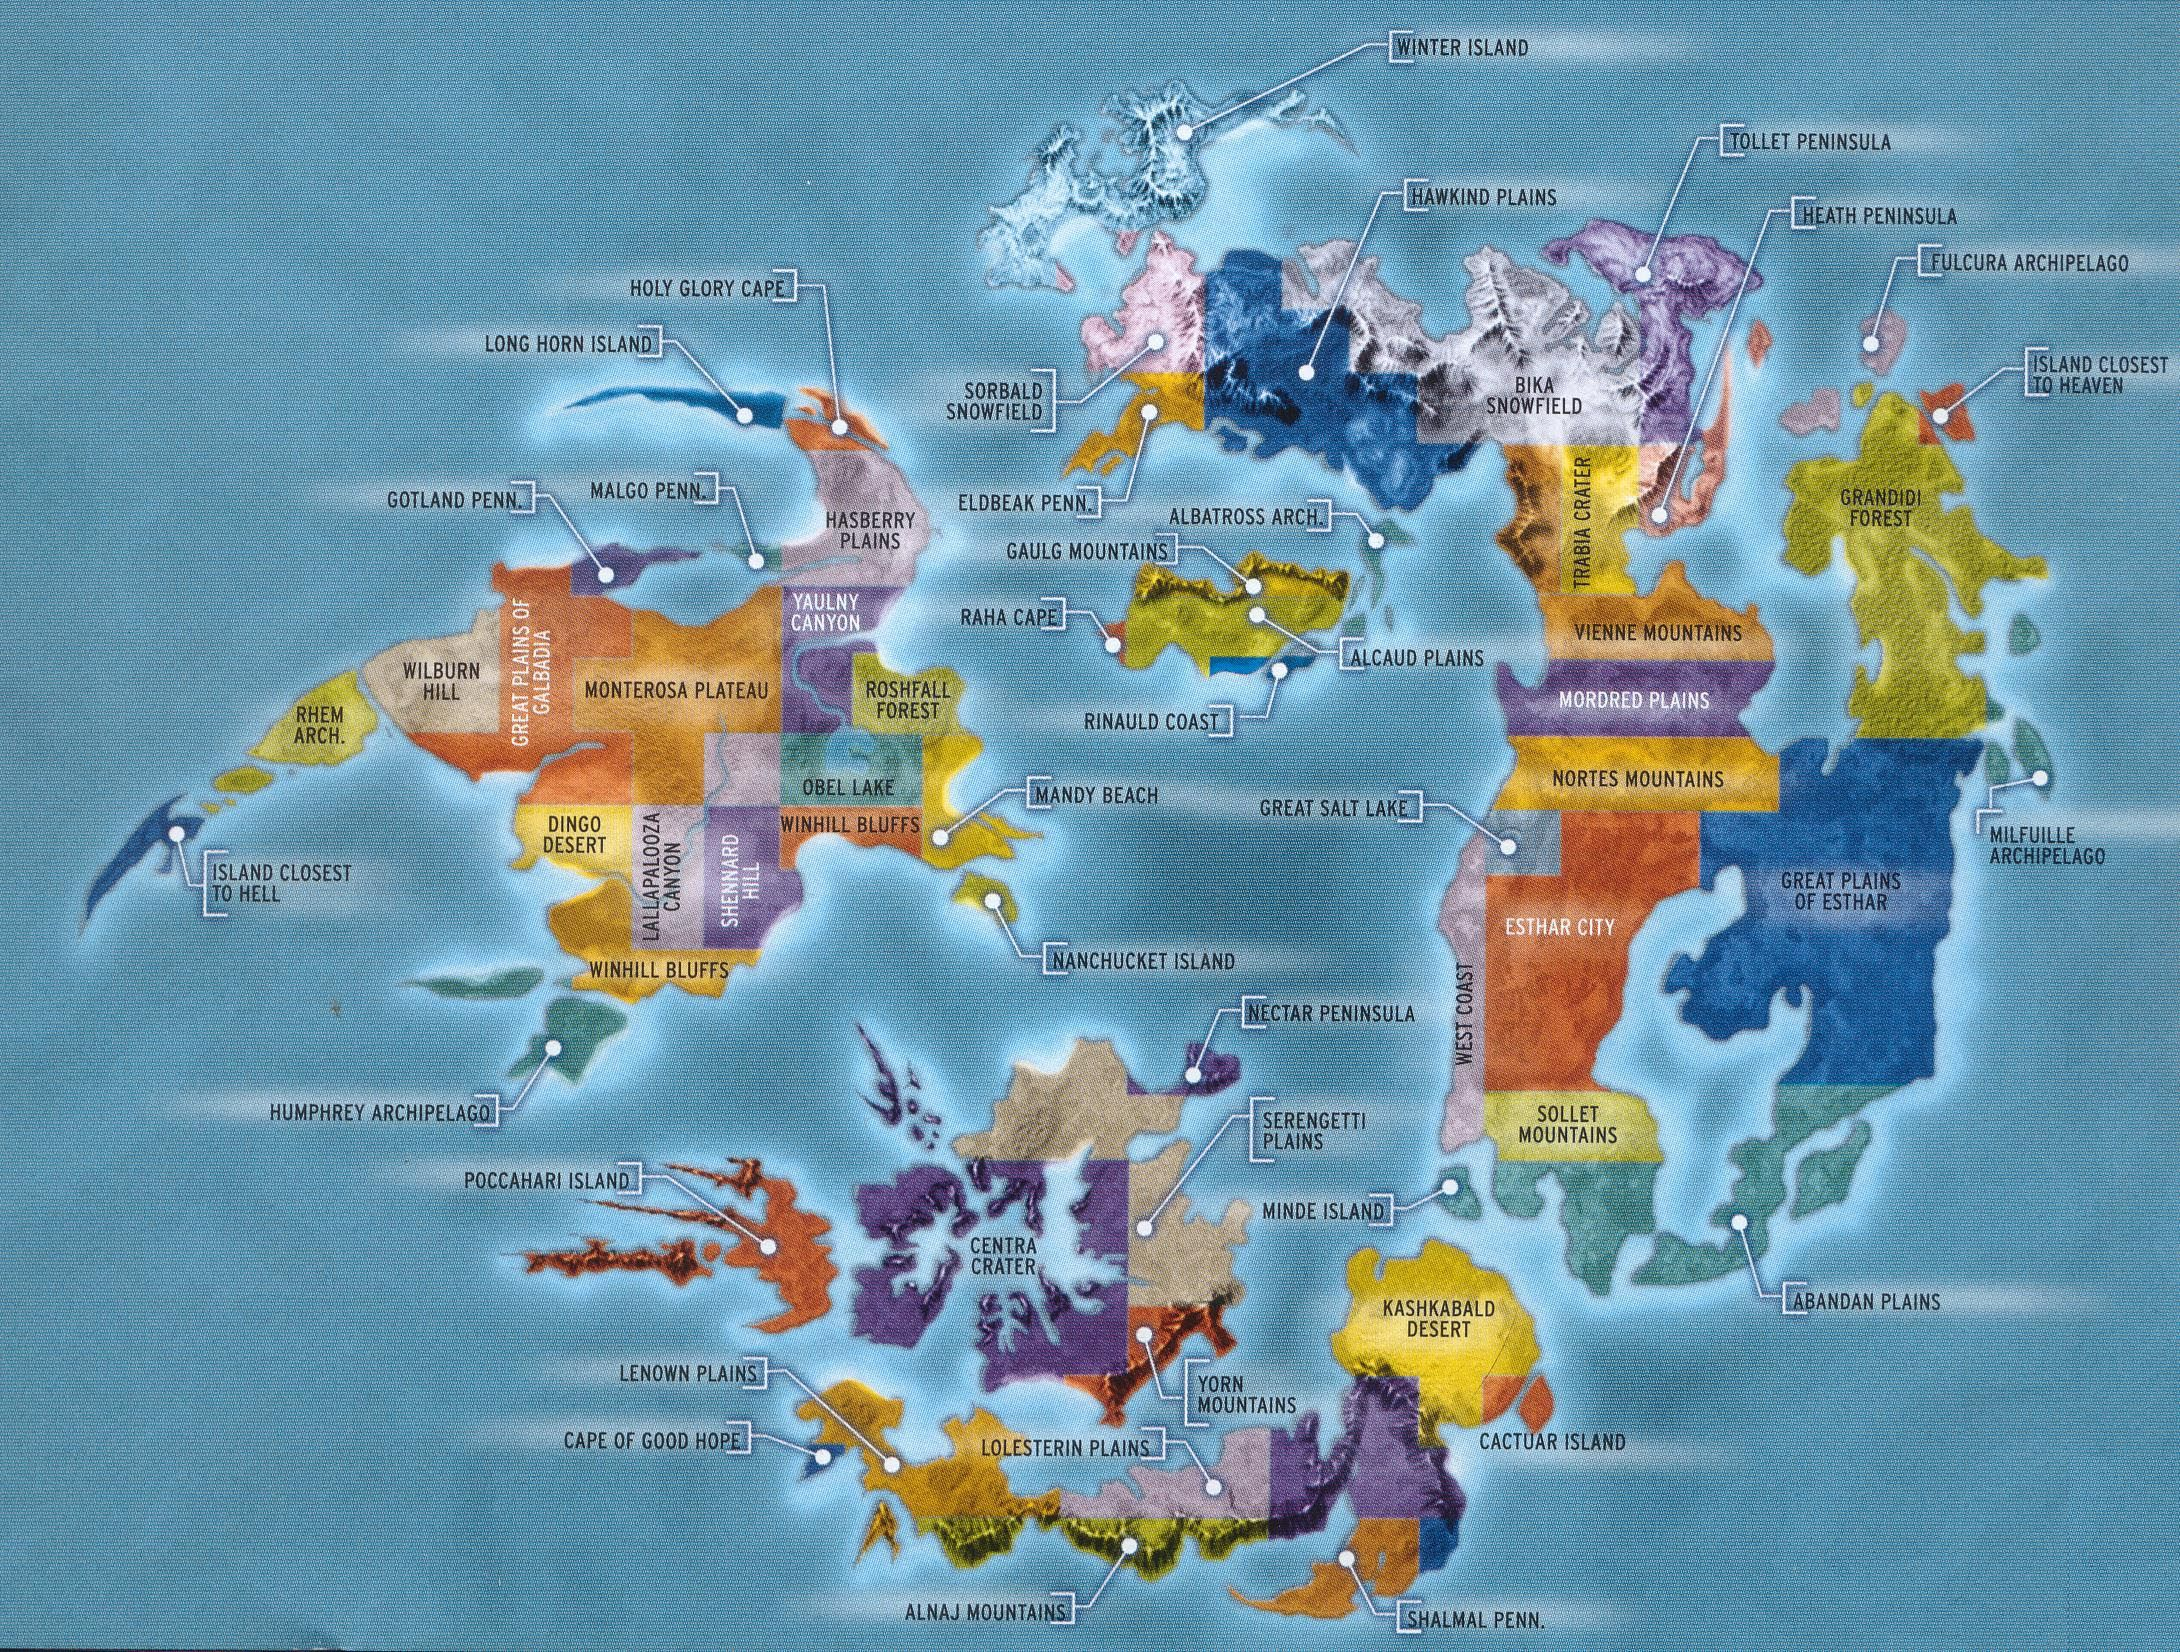 Map of ff8 fantasy world maps pinterest map of ff8 gumiabroncs Image collections